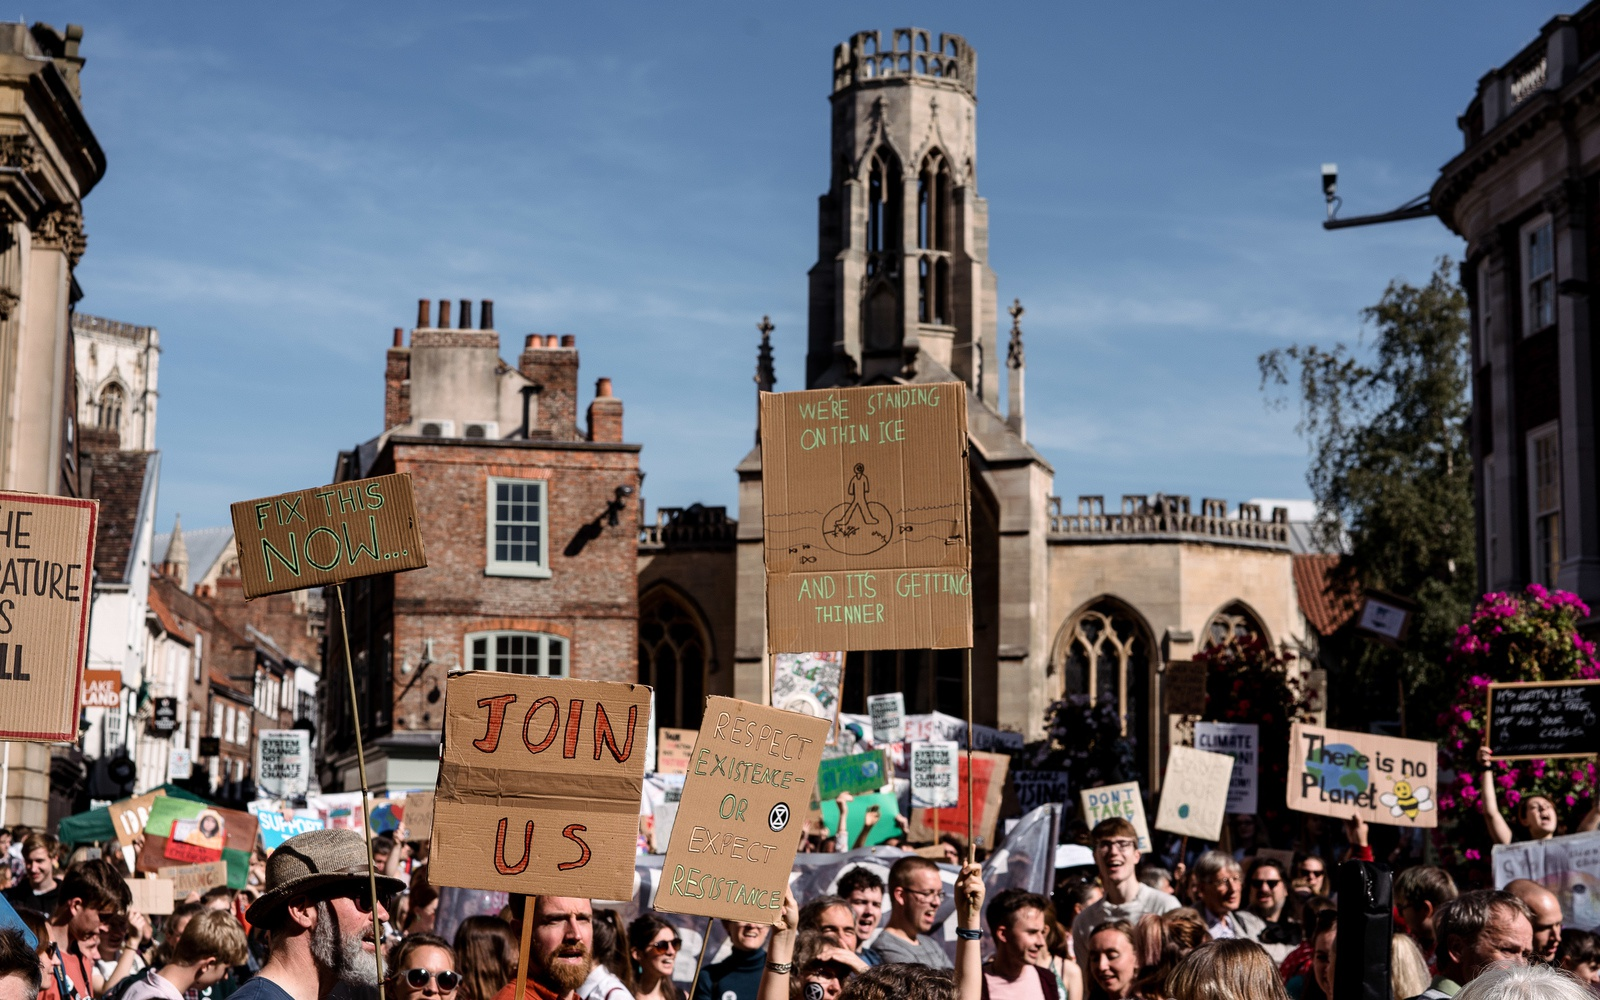 Students on climate strike in York city centre